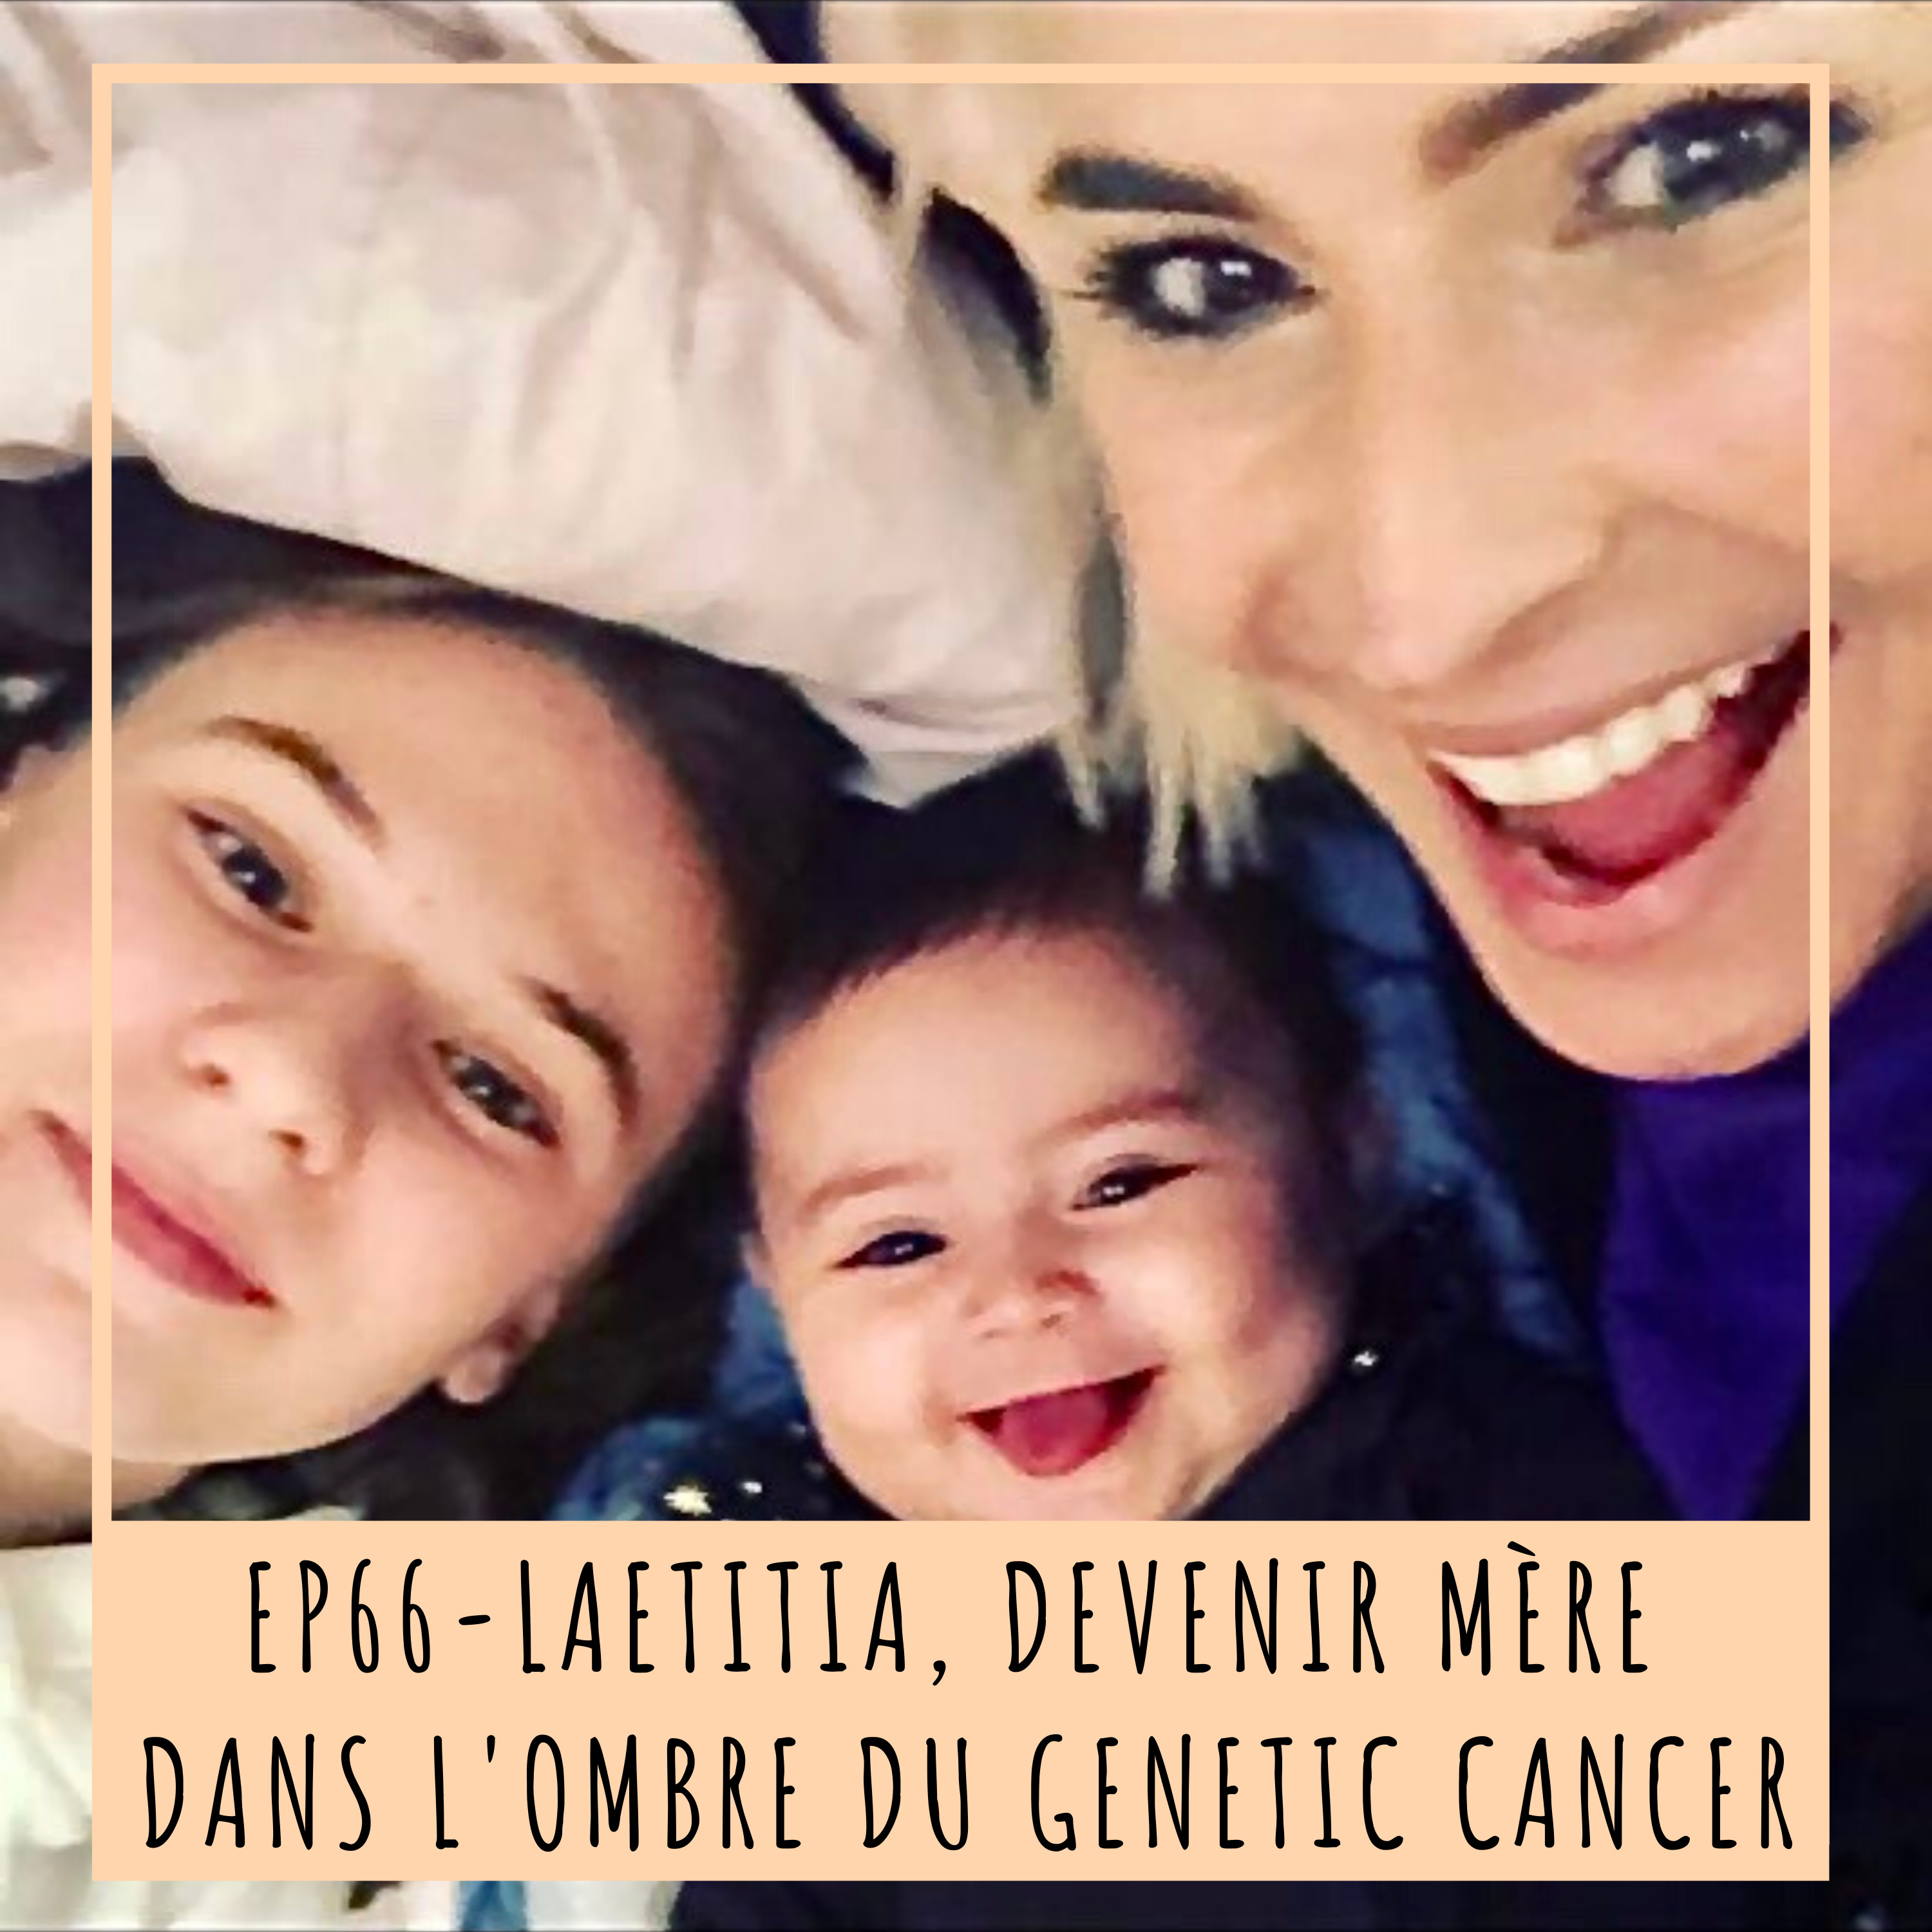 EP66- LAETITIA, DEVENIR MÈRE DANS L'OMBRE DU GENETIC CANCER